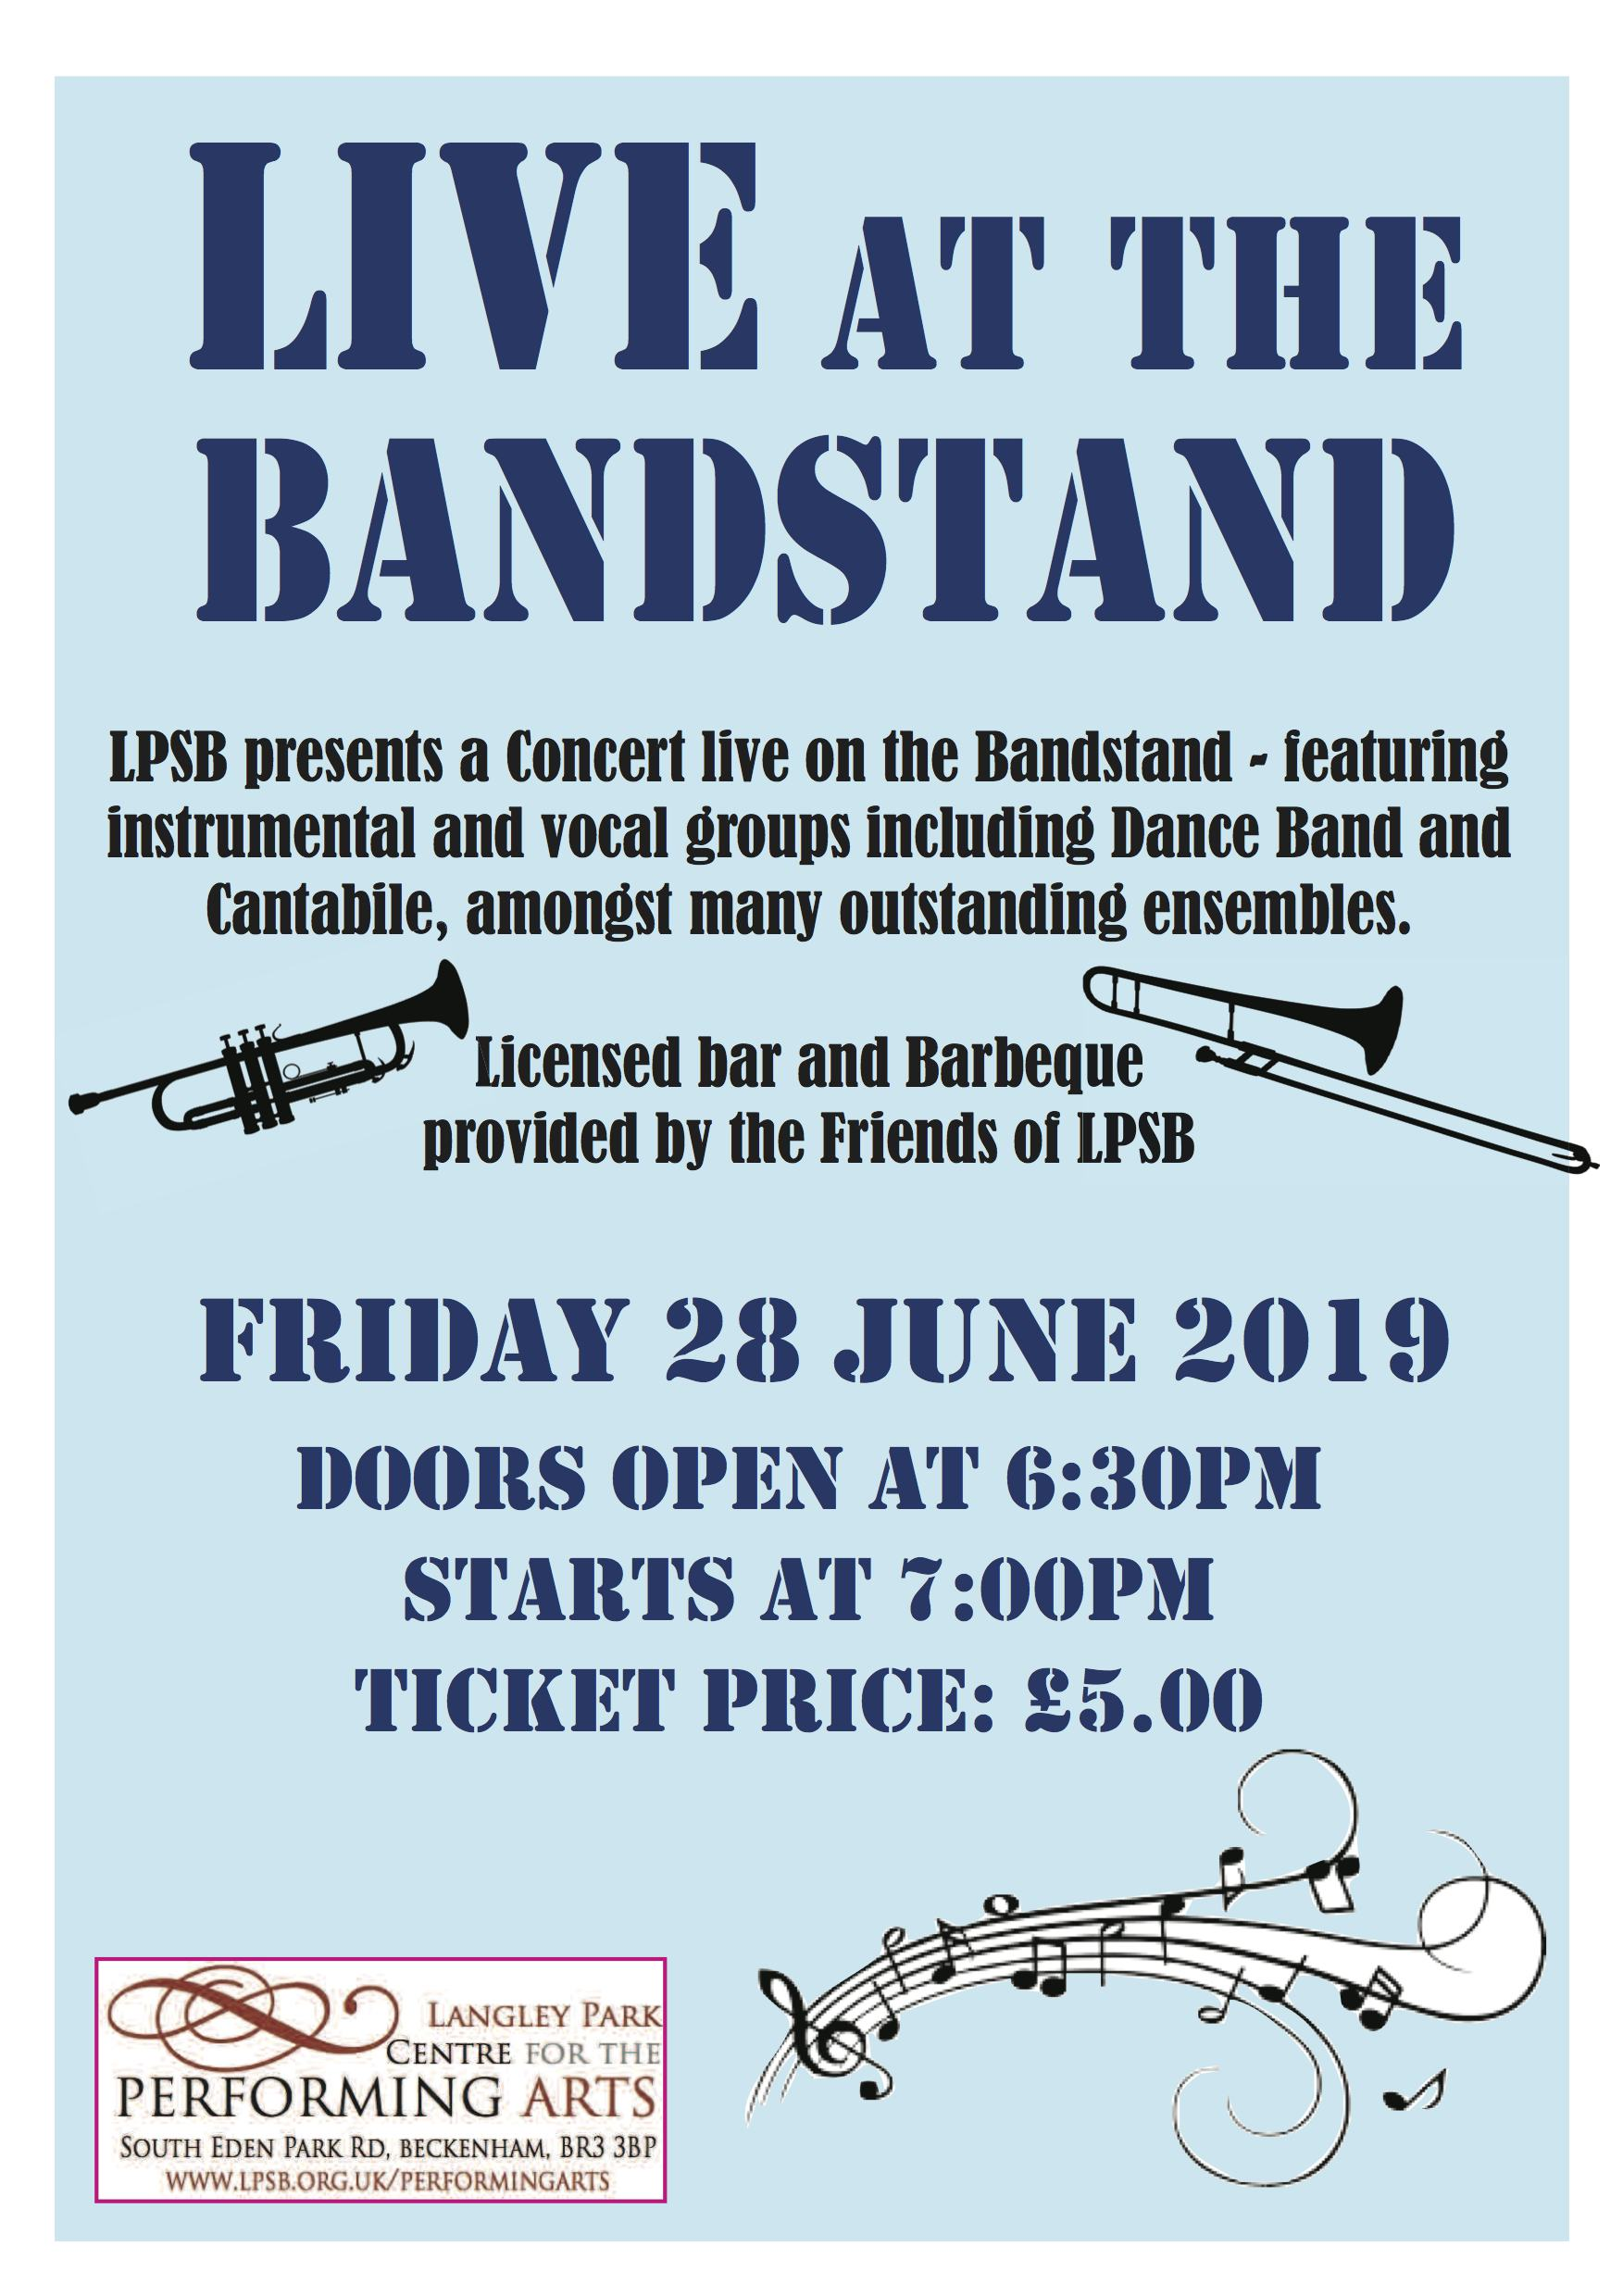 Live at the Bandstand 2019 banner image